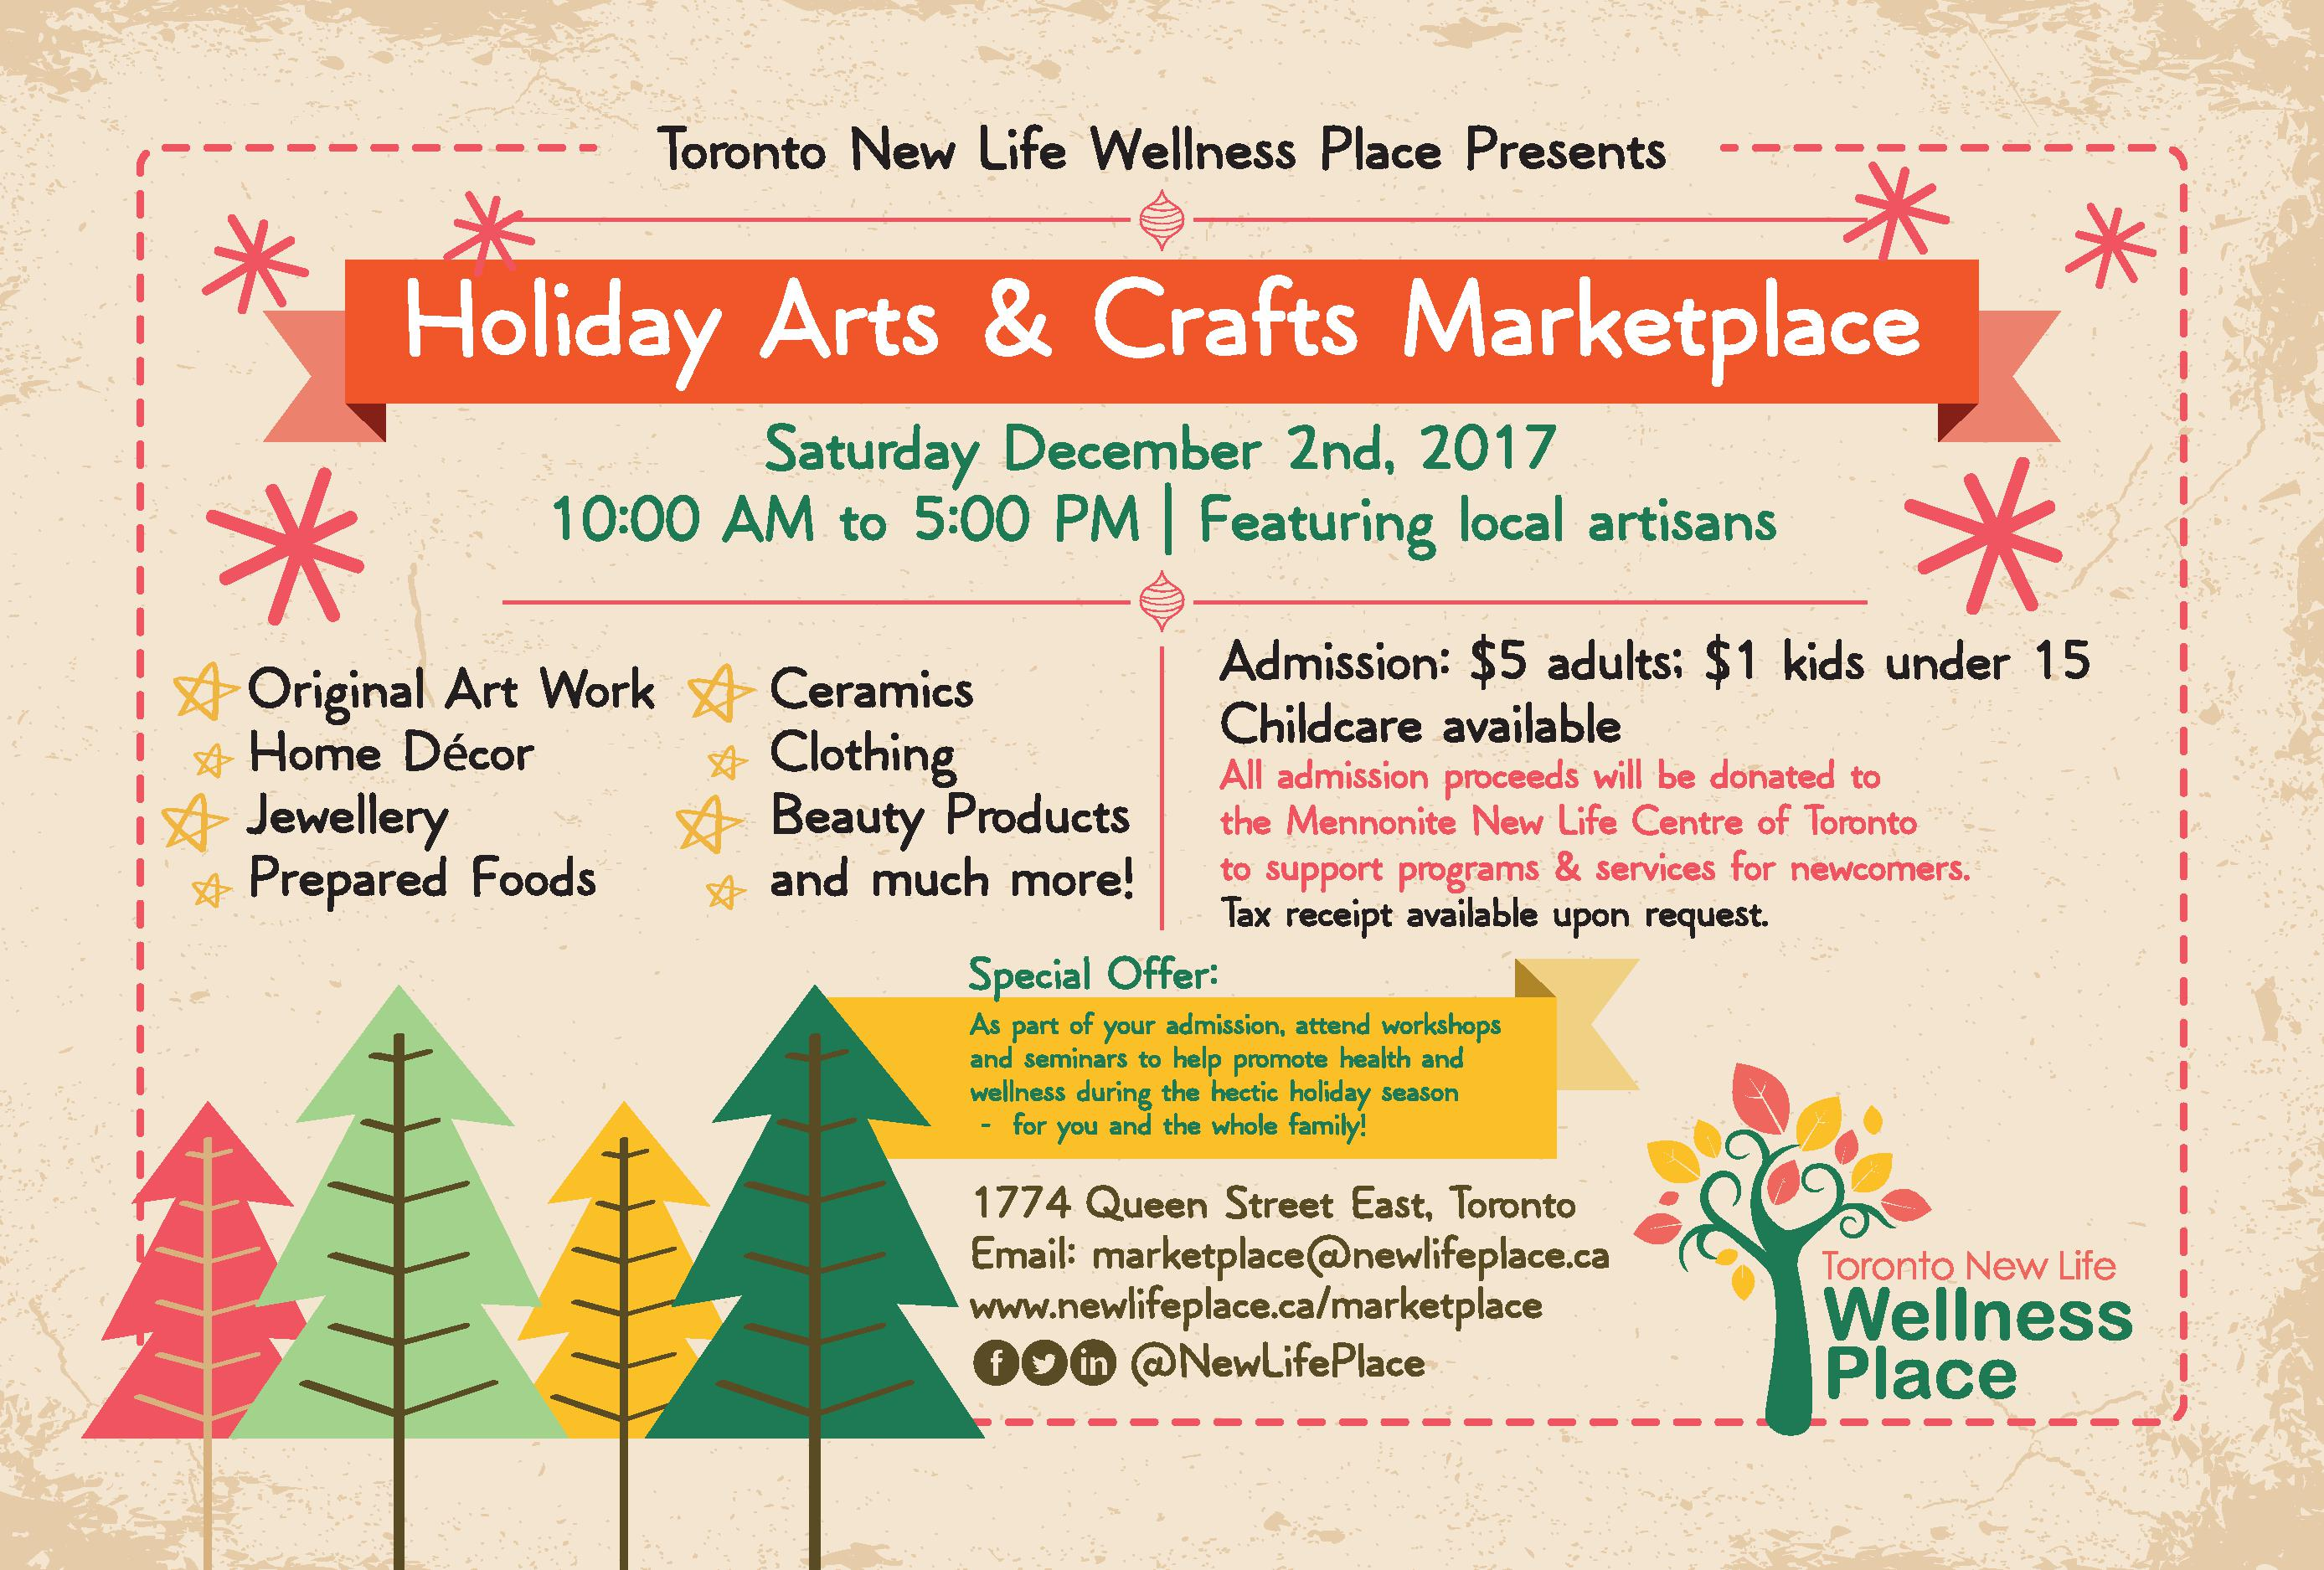 Dec 2 Holiday Arts & Crafts Marketplace